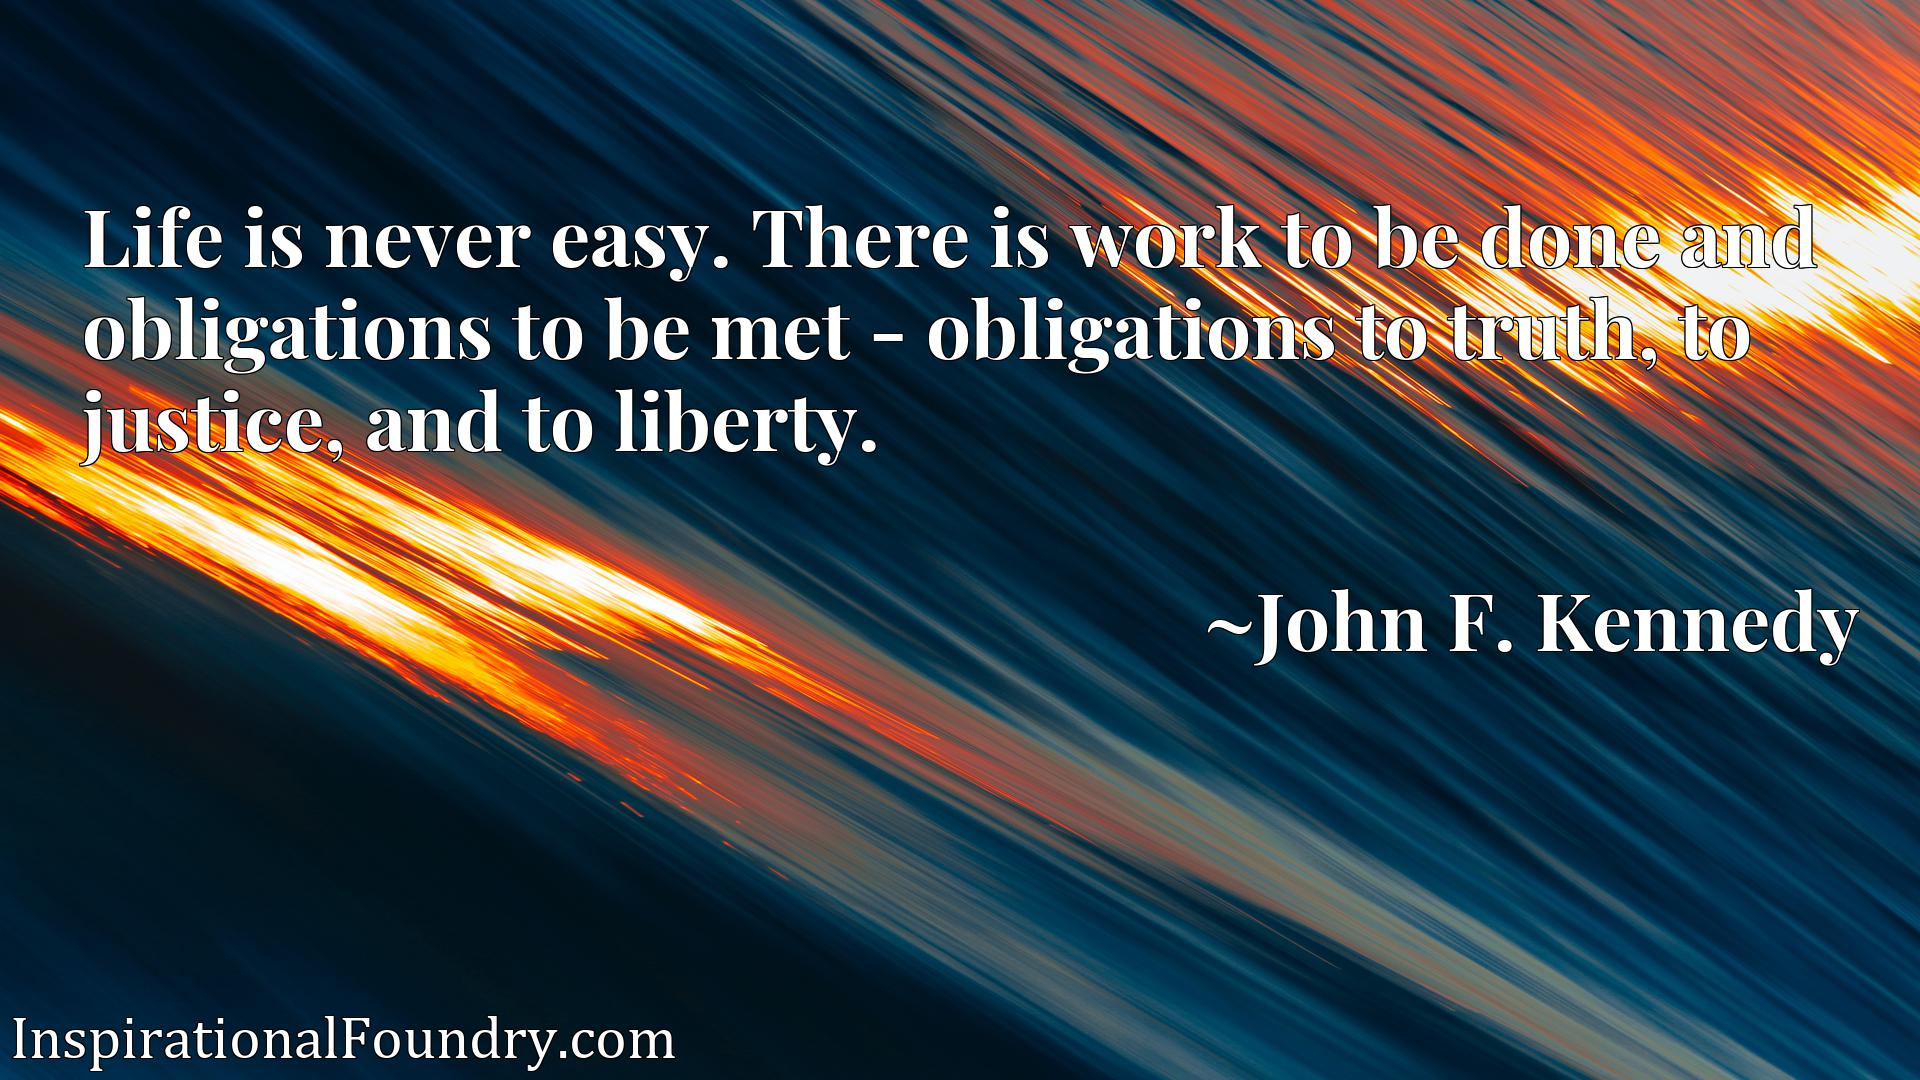 Life is never easy. There is work to be done and obligations to be met - obligations to truth, to justice, and to liberty.